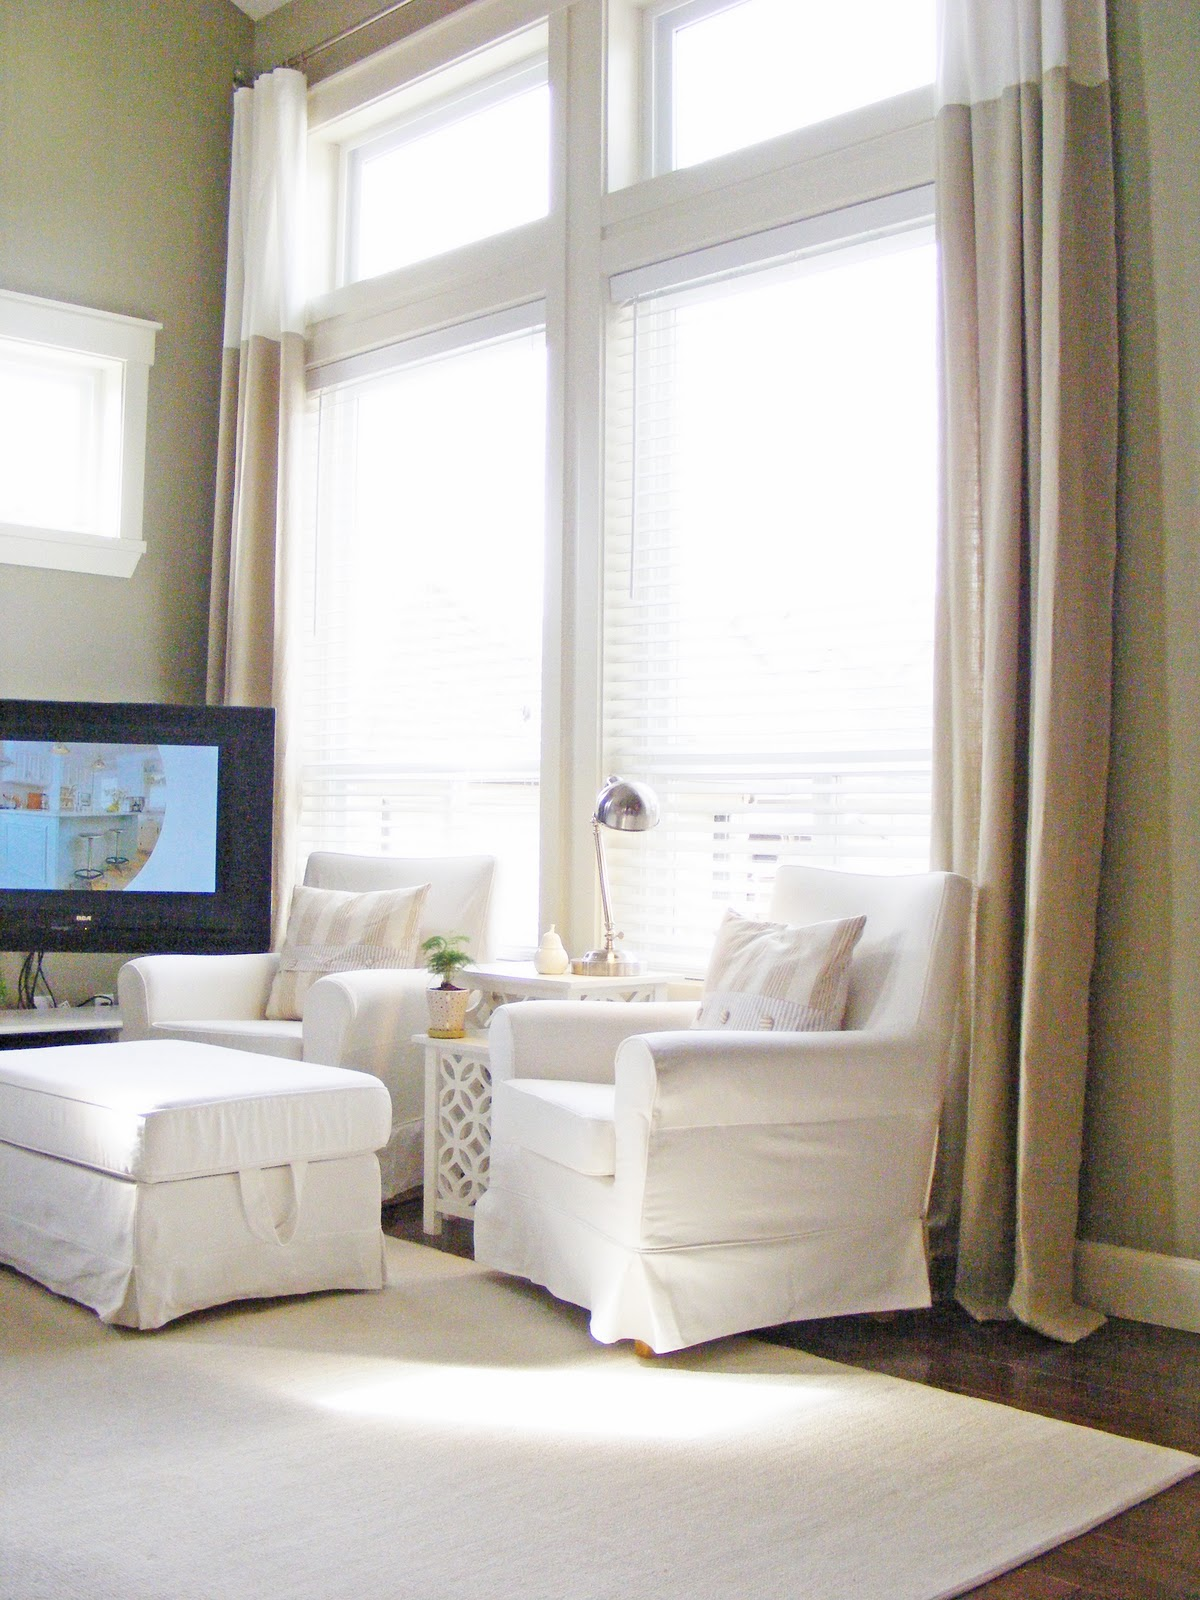 429 too many requests Latest window treatments